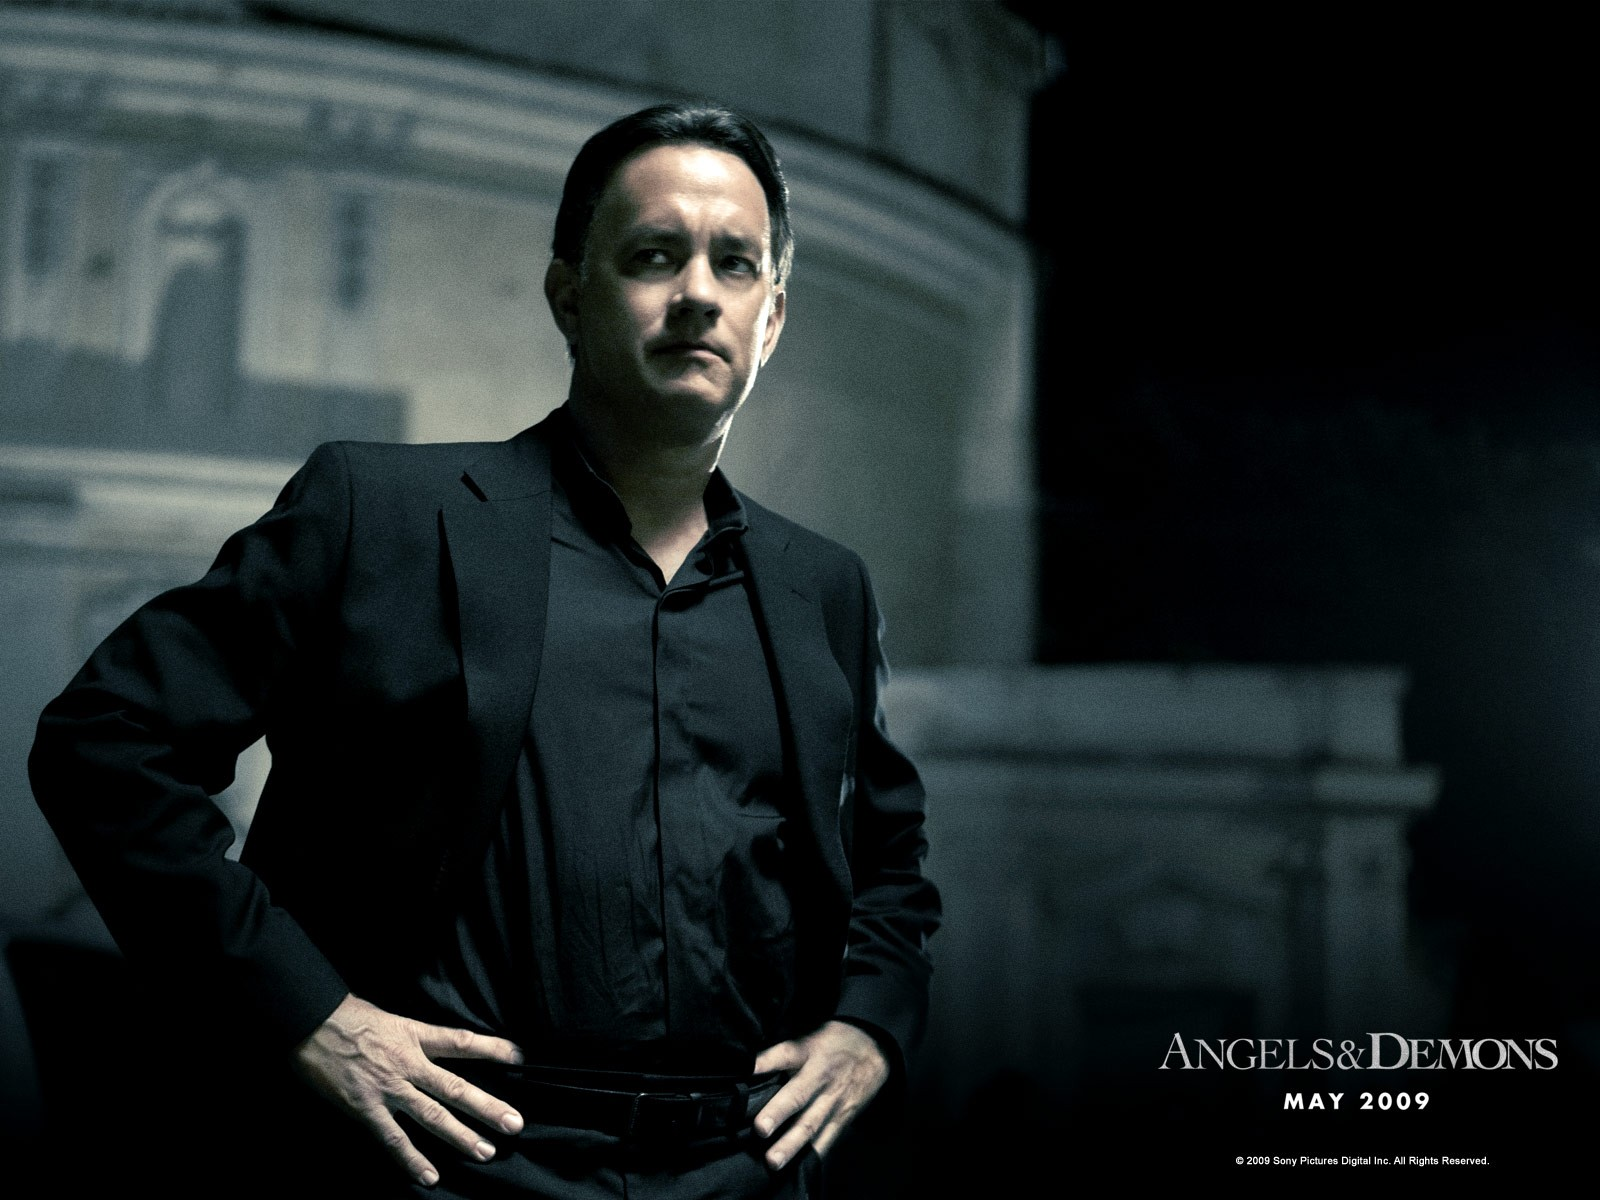 Wallpaper di Tom Hanks nel film 'Angeli e Demoni'